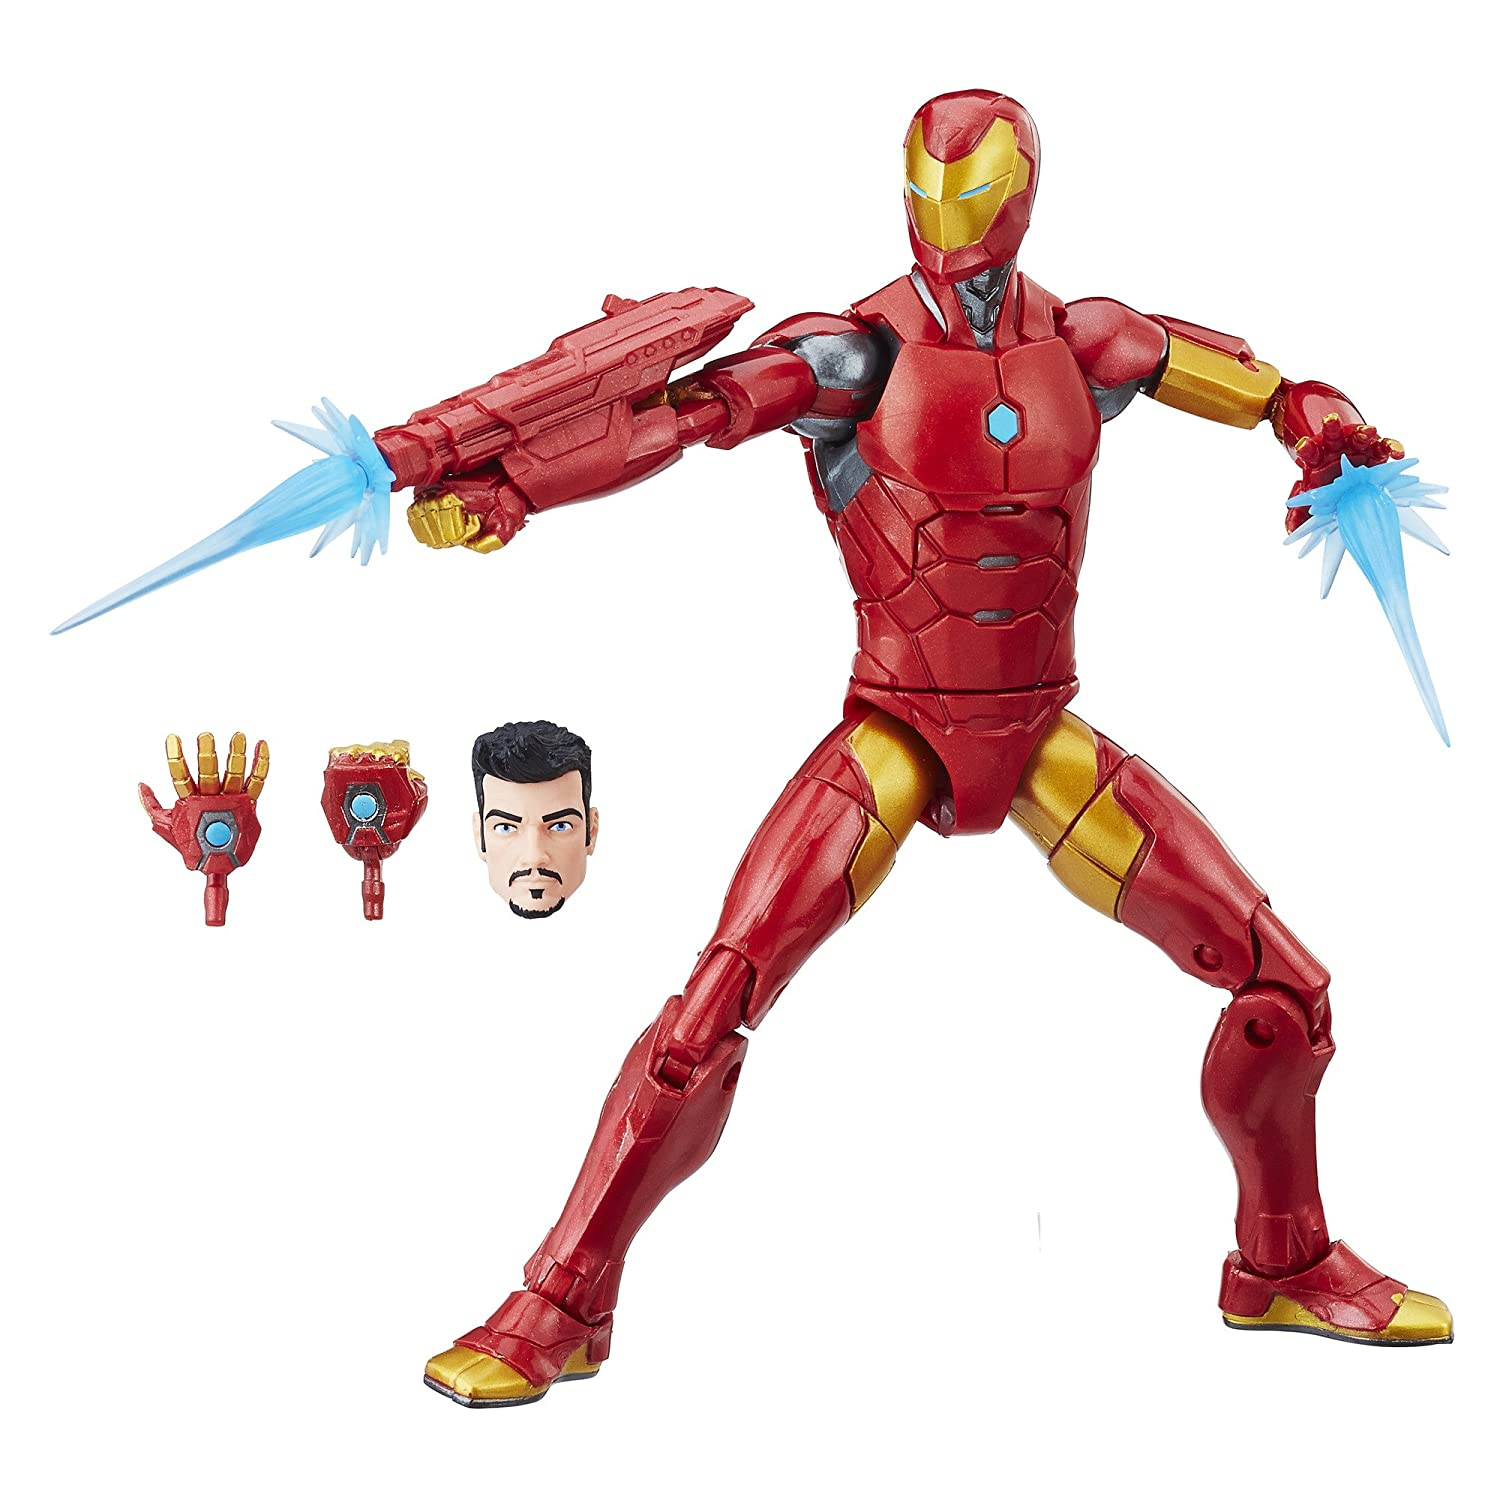 Marvel Black Panther Legends Series Iron Man, 6-inch Hasbro E1576